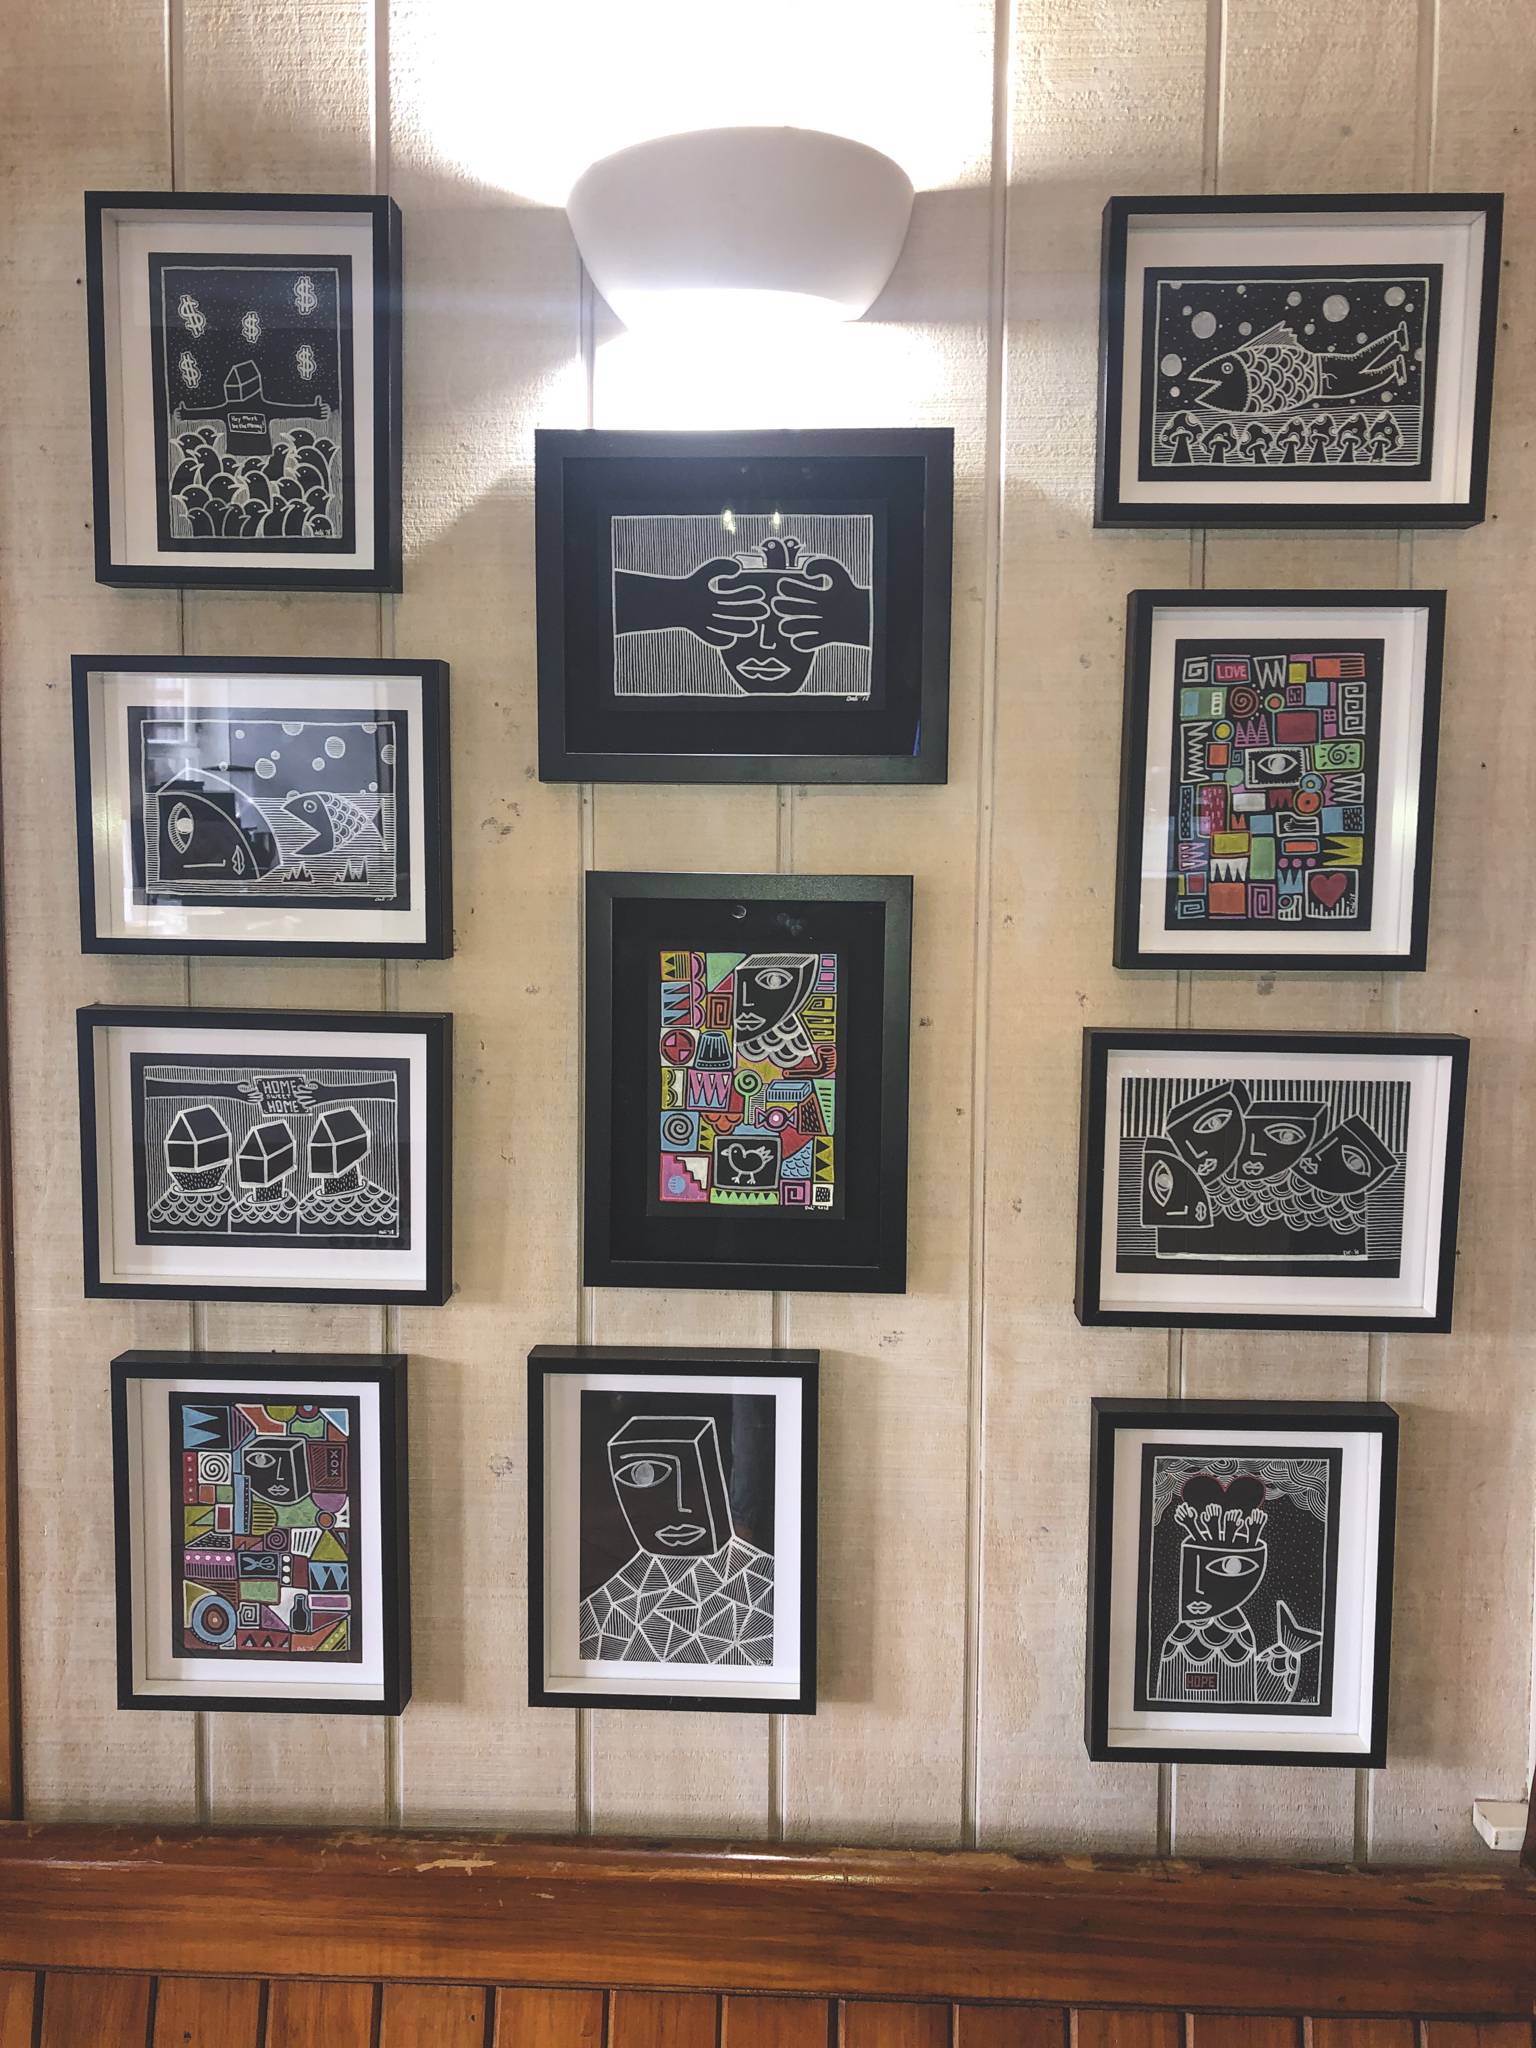 Abstract Framed Drawings